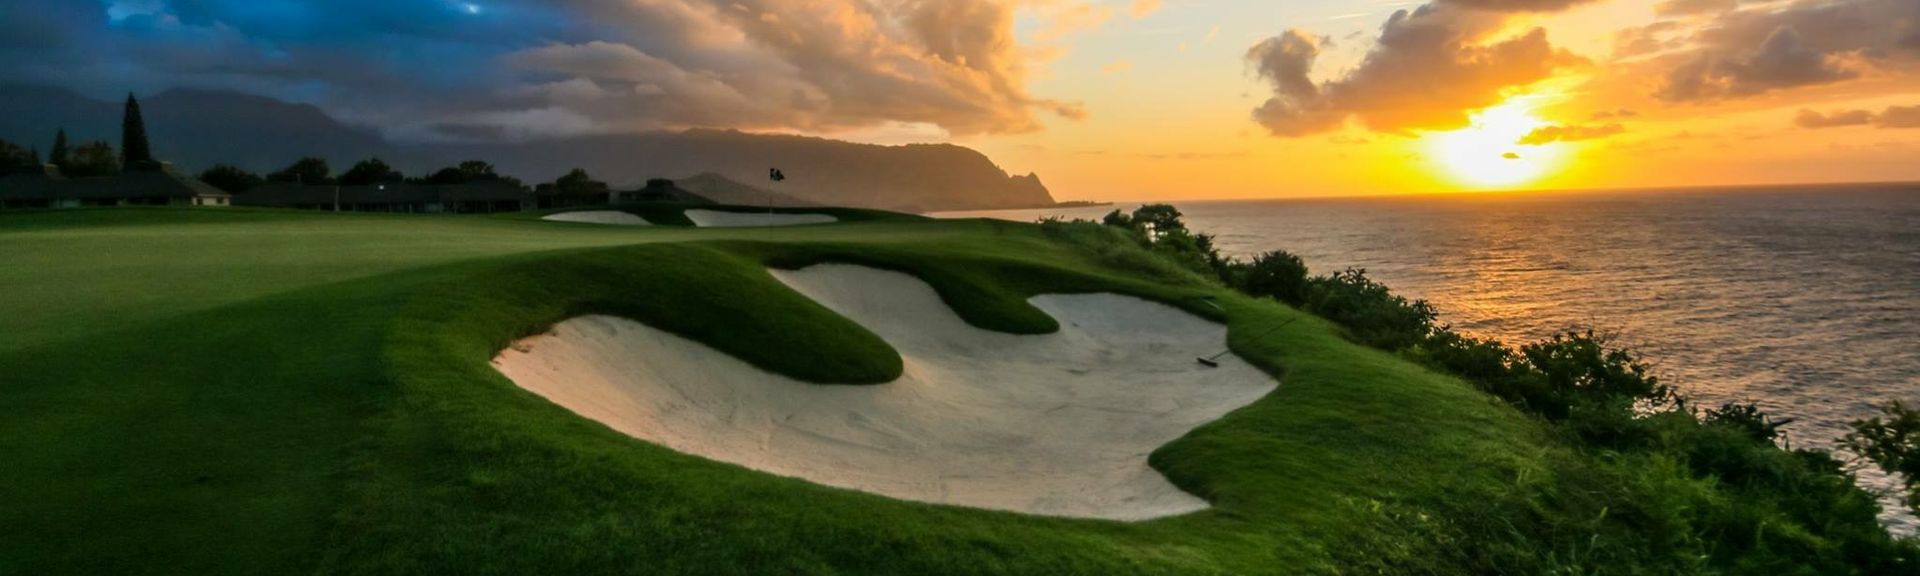 Wyndham Ka 'Eo Kai, Princeville, Hawaii, United States of America